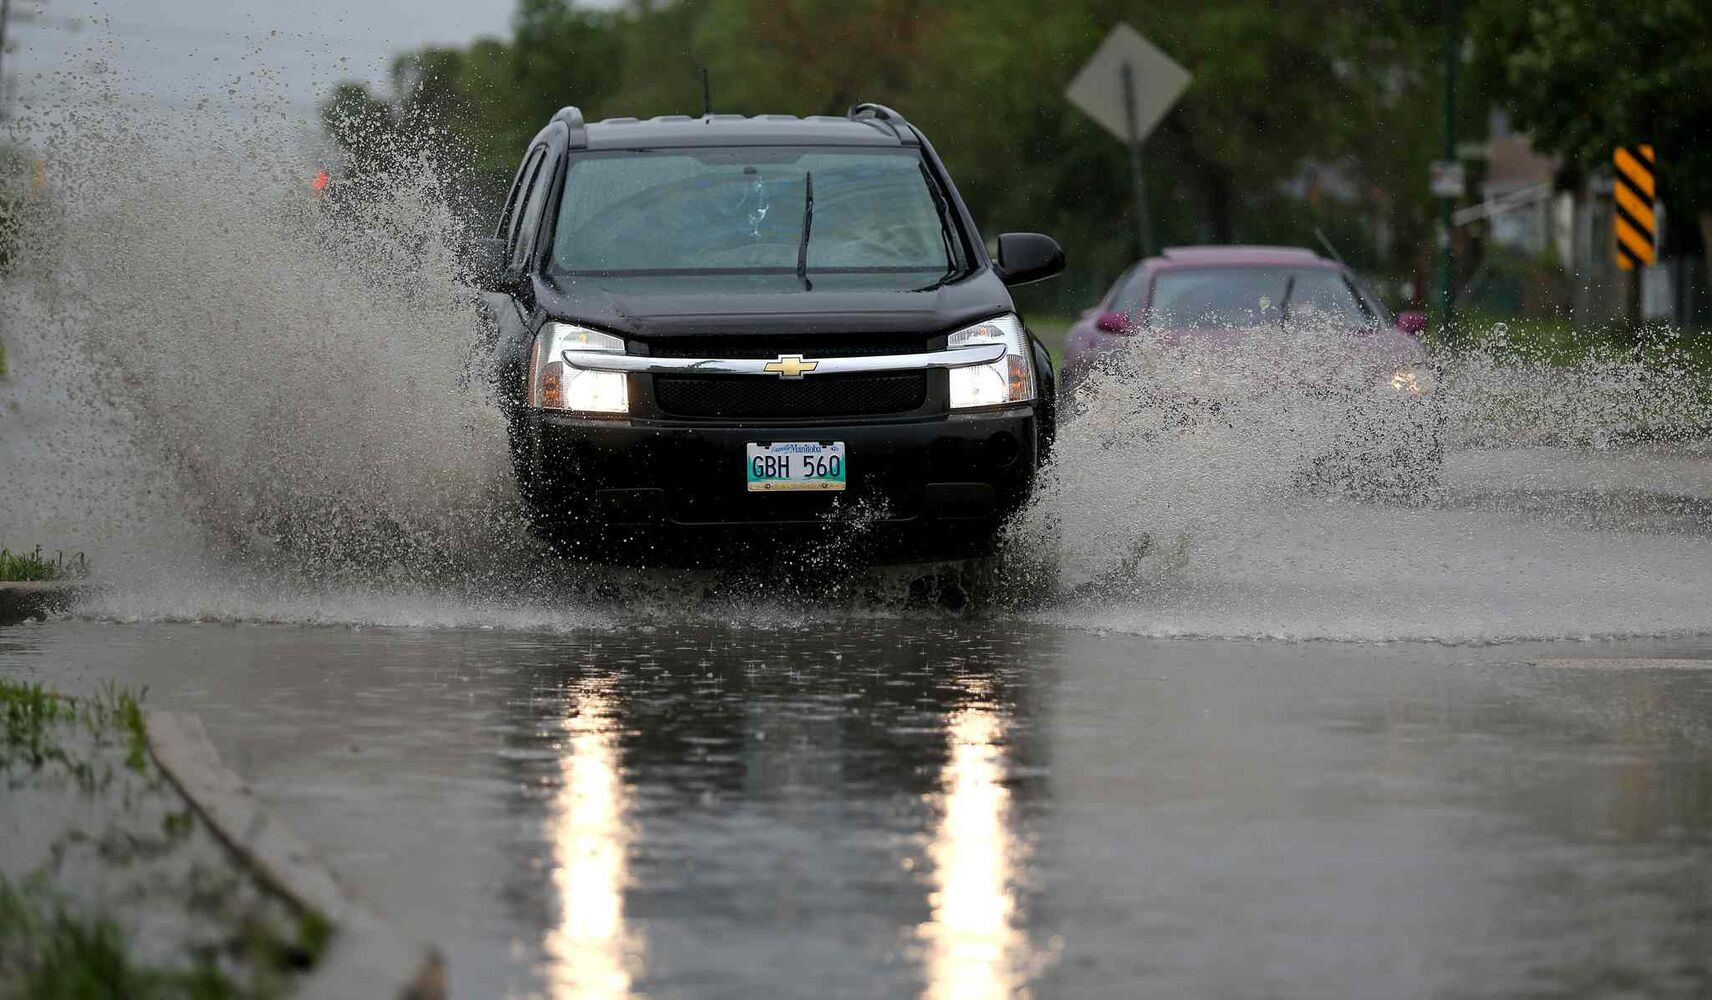 Vehicles splash through a deep puddle at Notre Dame Avenue and Border Street, Sunday, June 29, 2014.  (Trevor Hagan / Winnipeg Free Press)